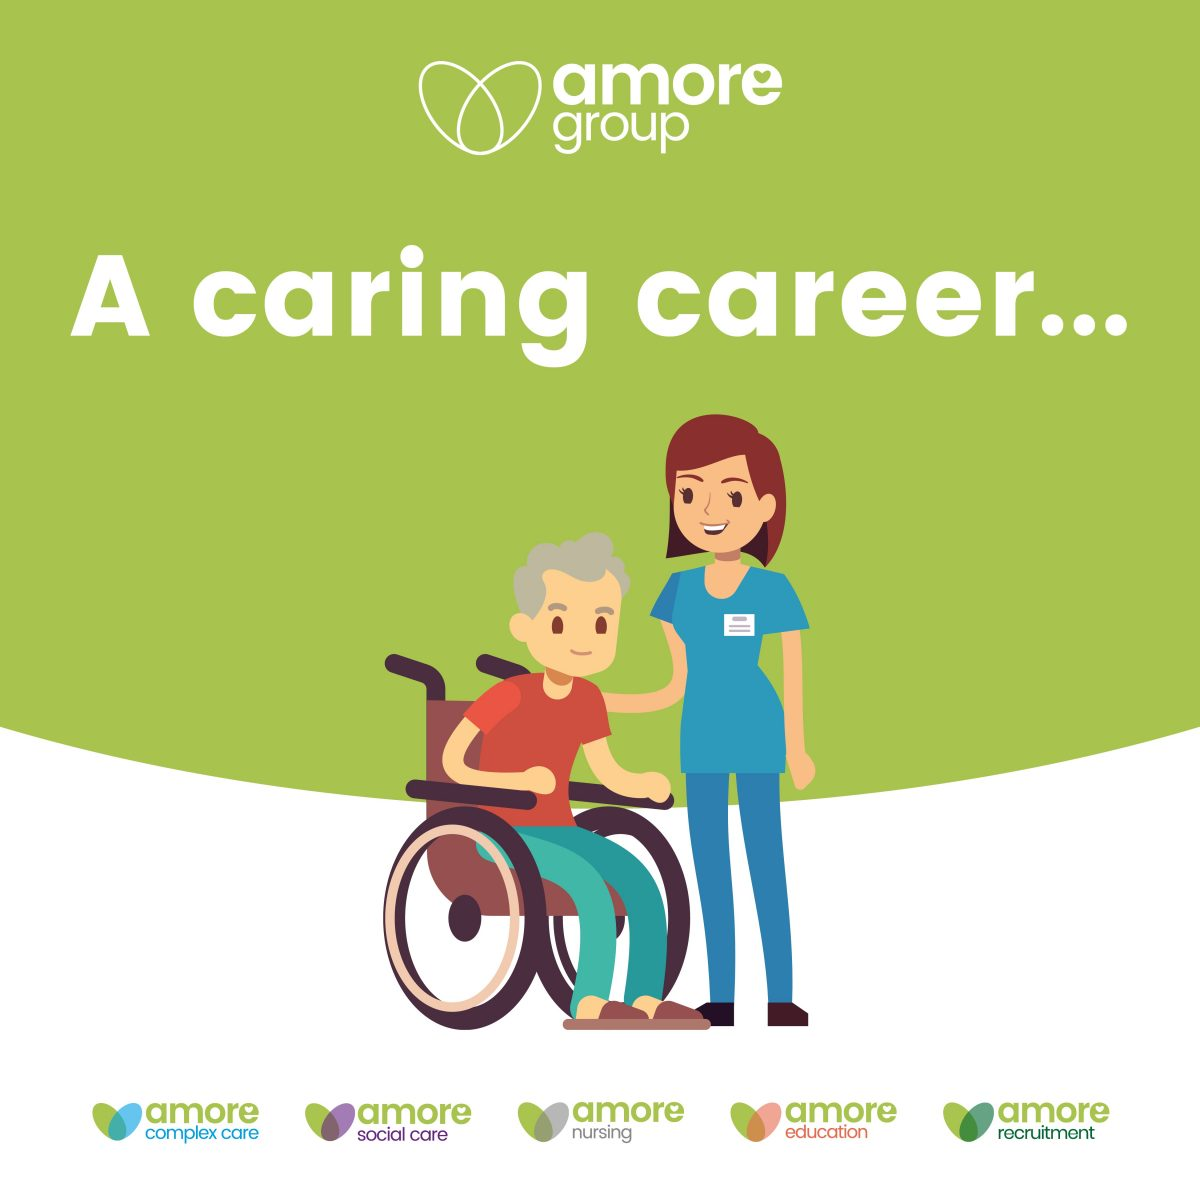 A caring career